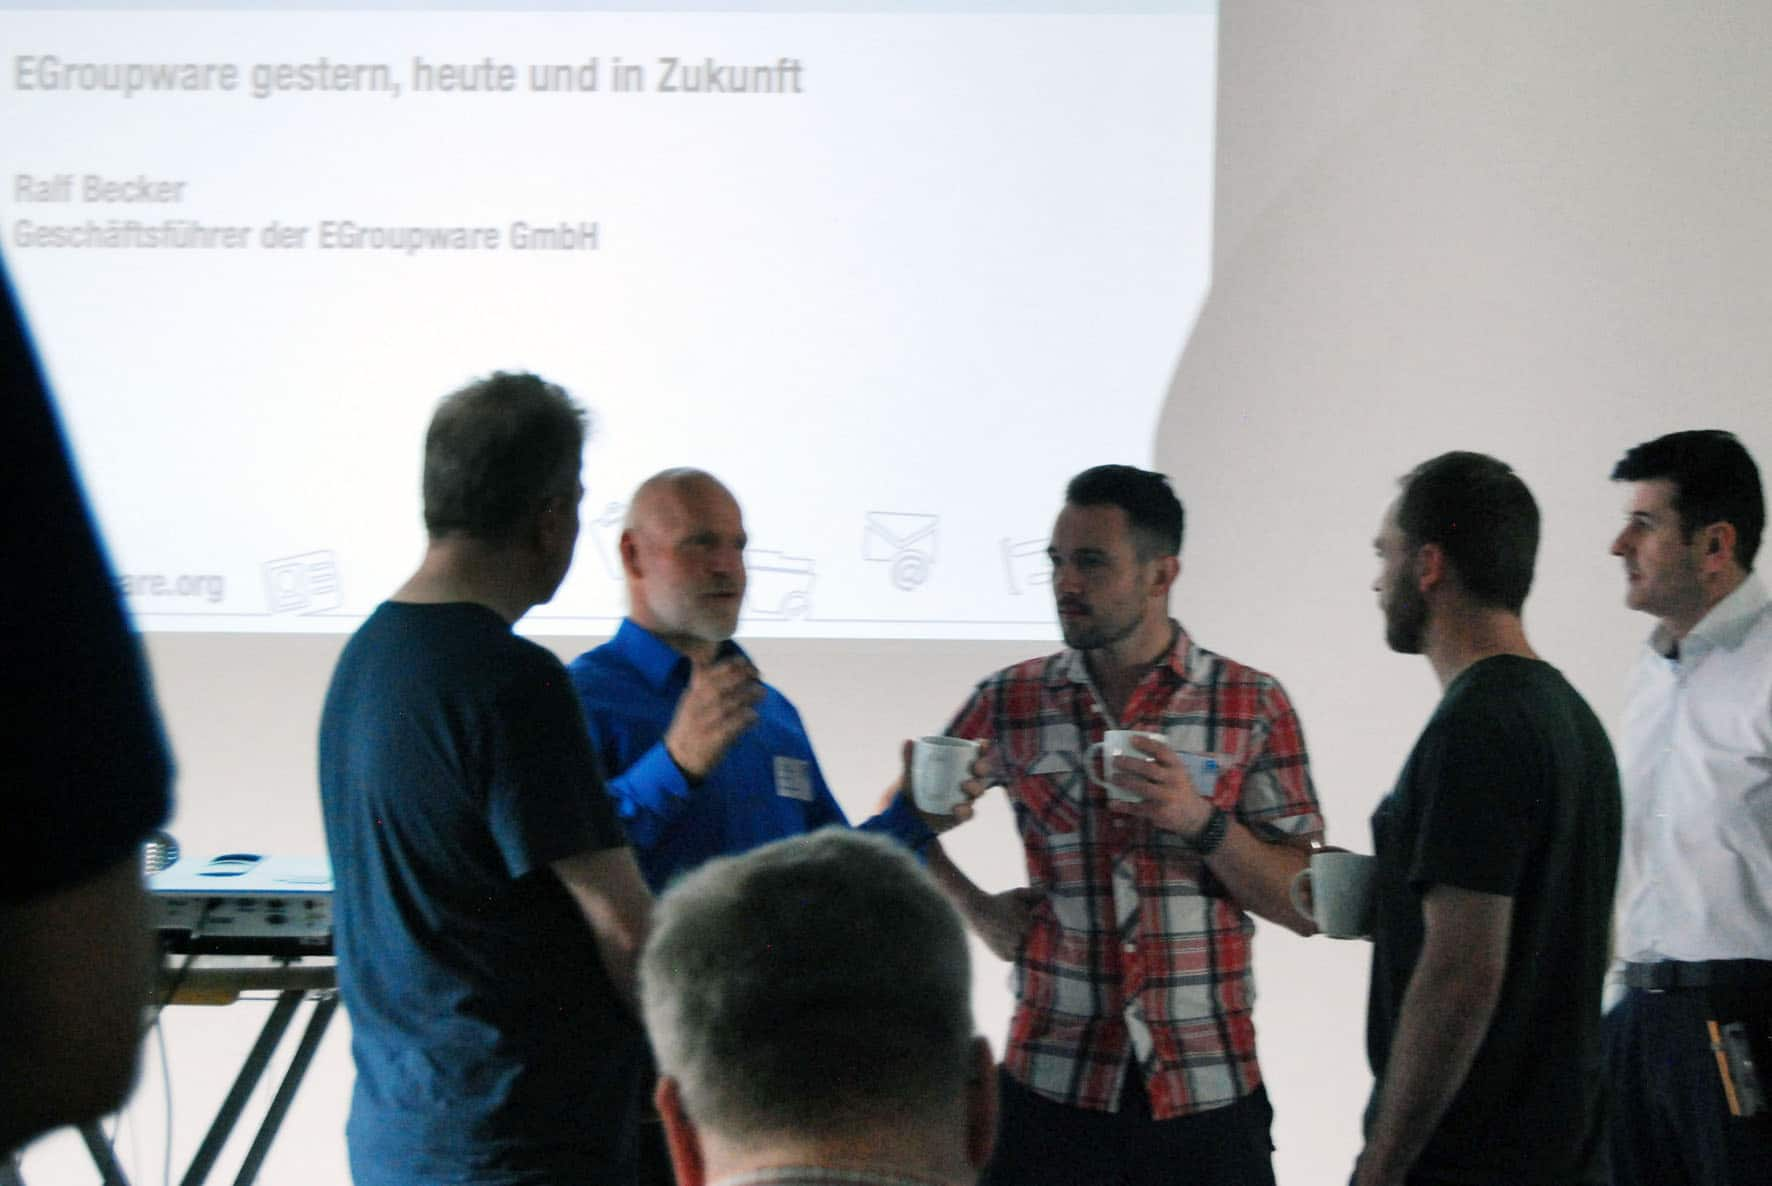 Groupware users and Ralf Becker